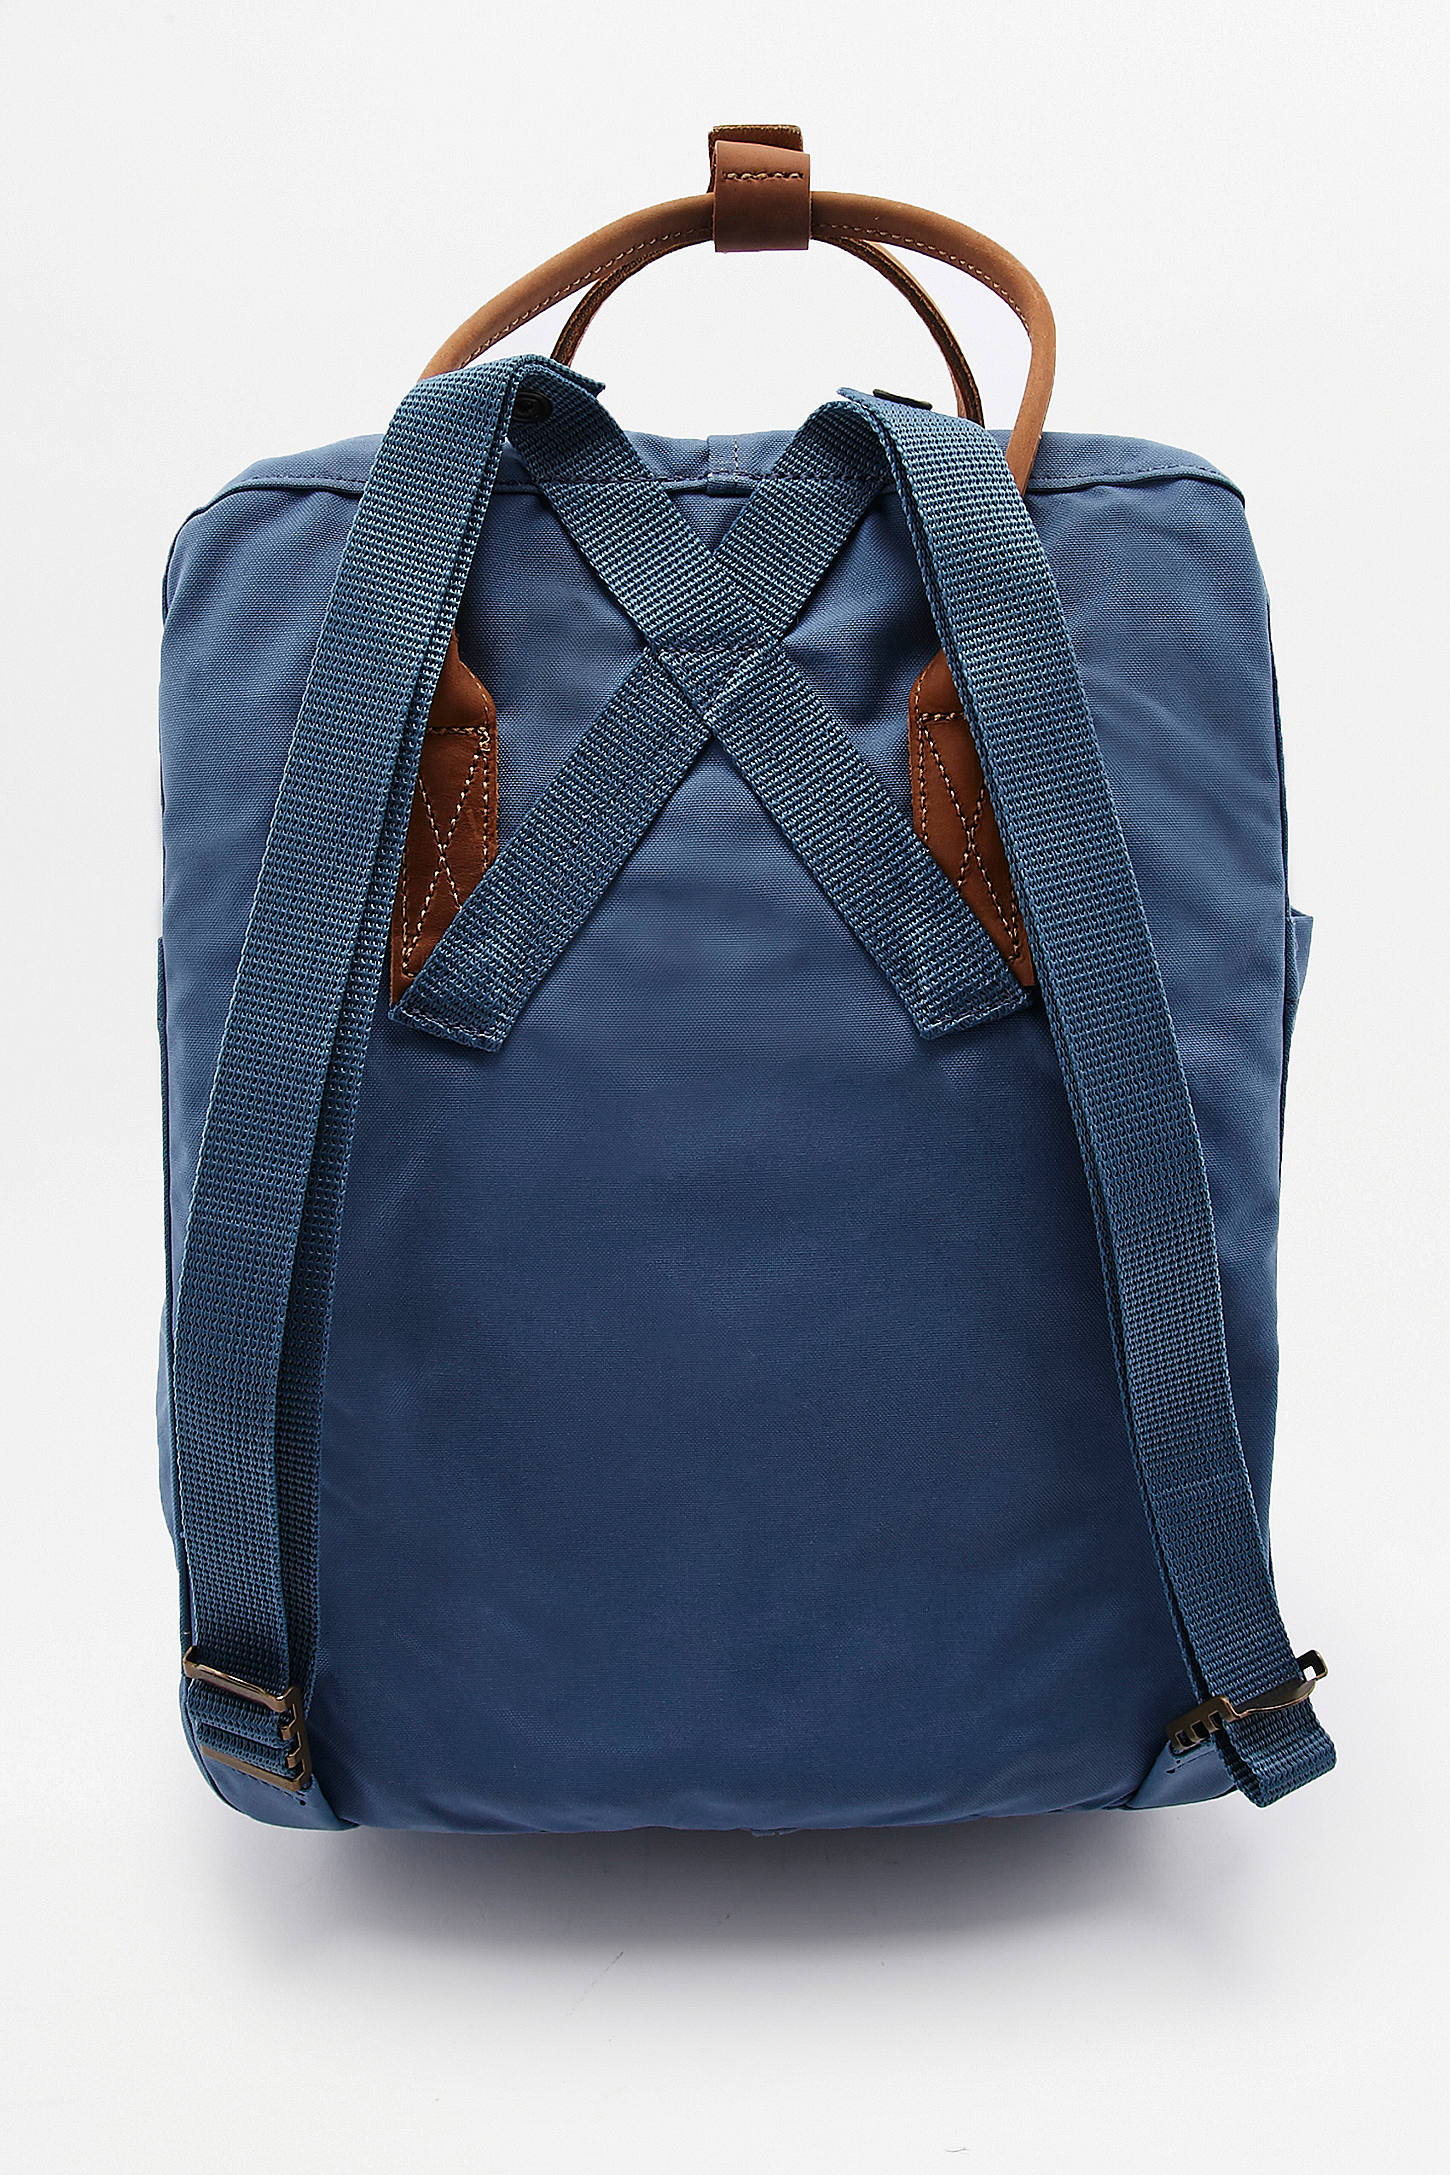 Fjallraven Kanken No. 2 Blue Ridge Leather Backpack | Urban Outfitters